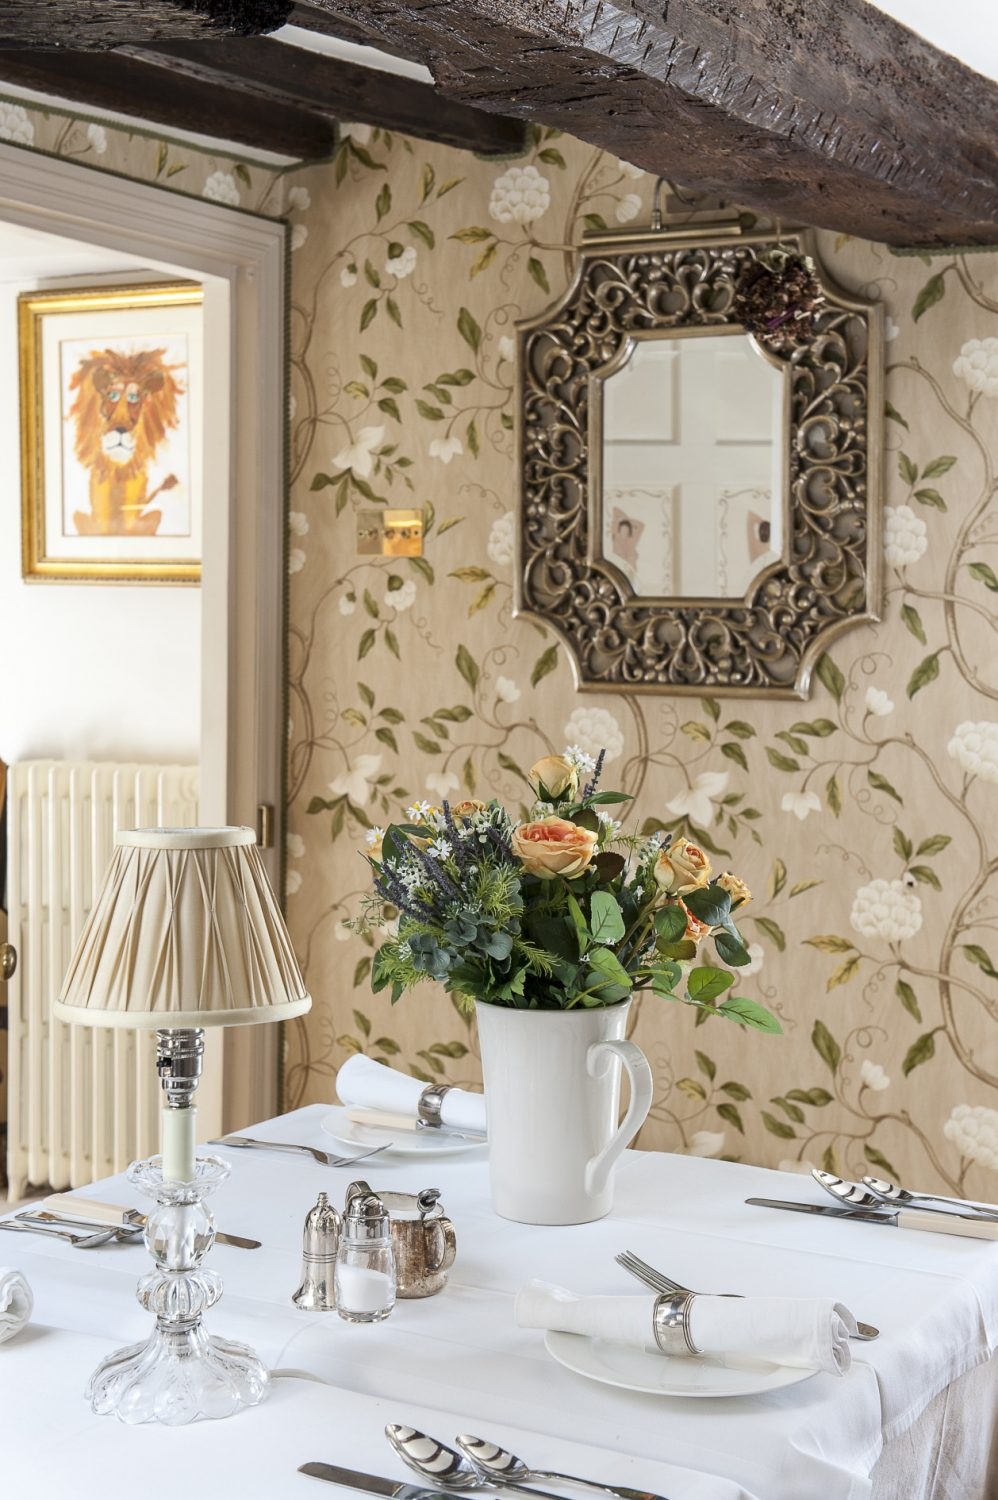 The dining room is used principally as a breakfast room. Nina has varnished the Colefax & Fowler 'Snowtree' wallpaper to give it the appearance of silk